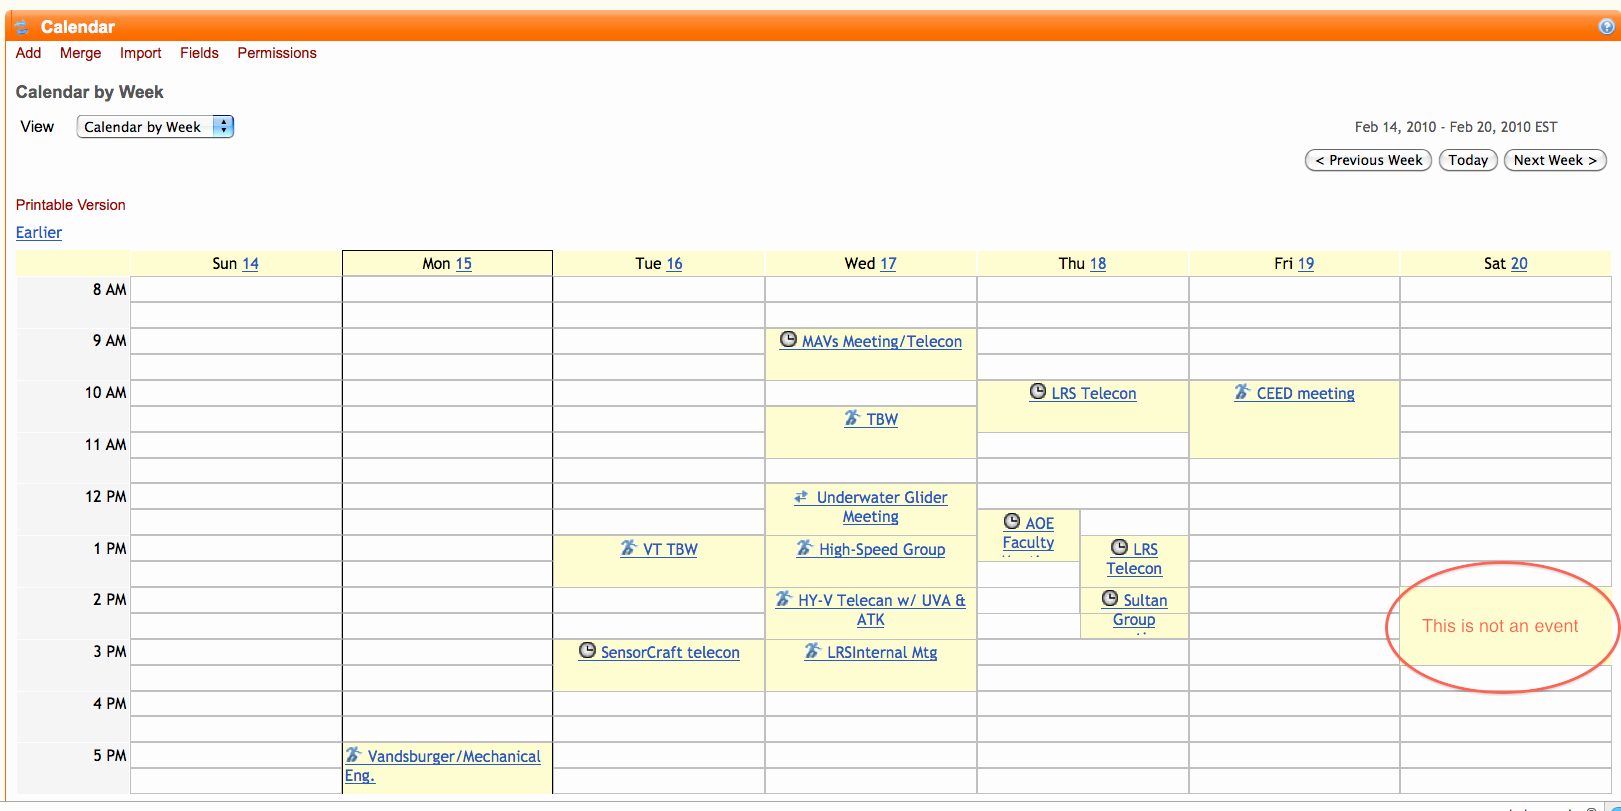 Monthly Calendar with Time Slots Inspirational Calendars 2016 with Time Slotsprintable Free Calendar